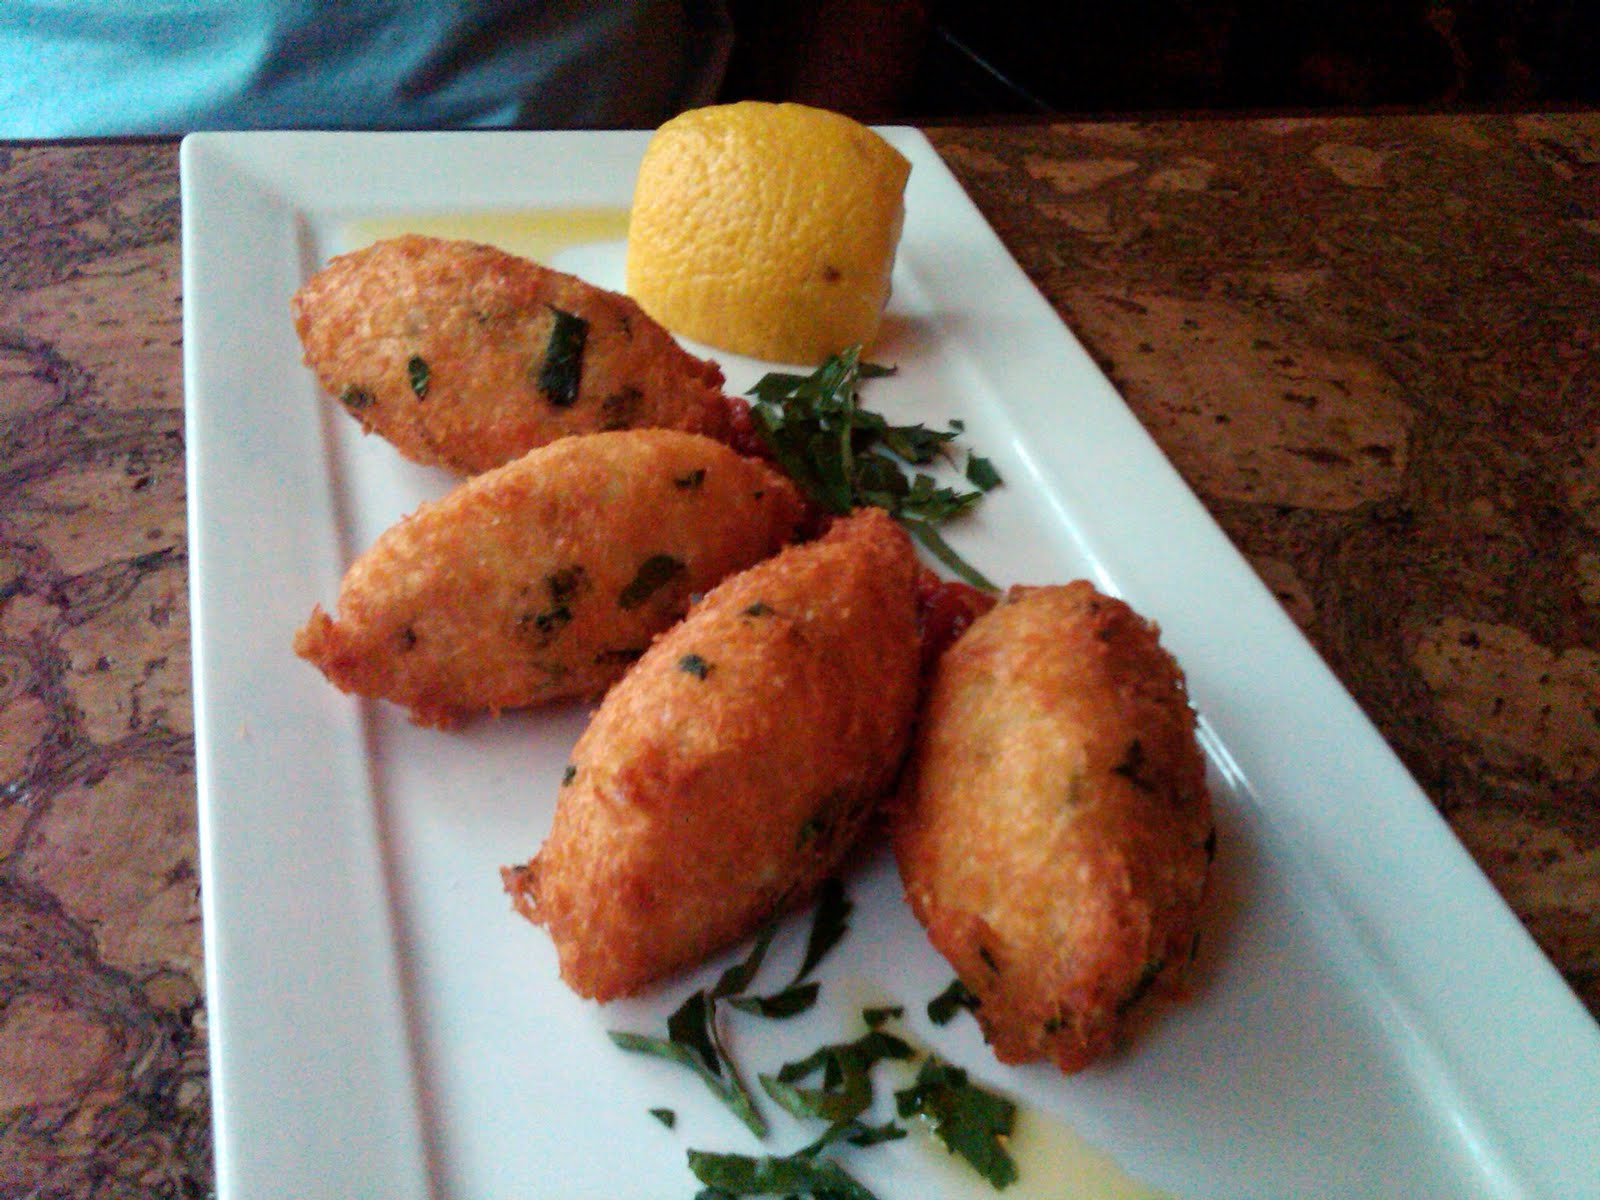 were served with lemon to squeeze over top, drizzled with a Portuguese ...